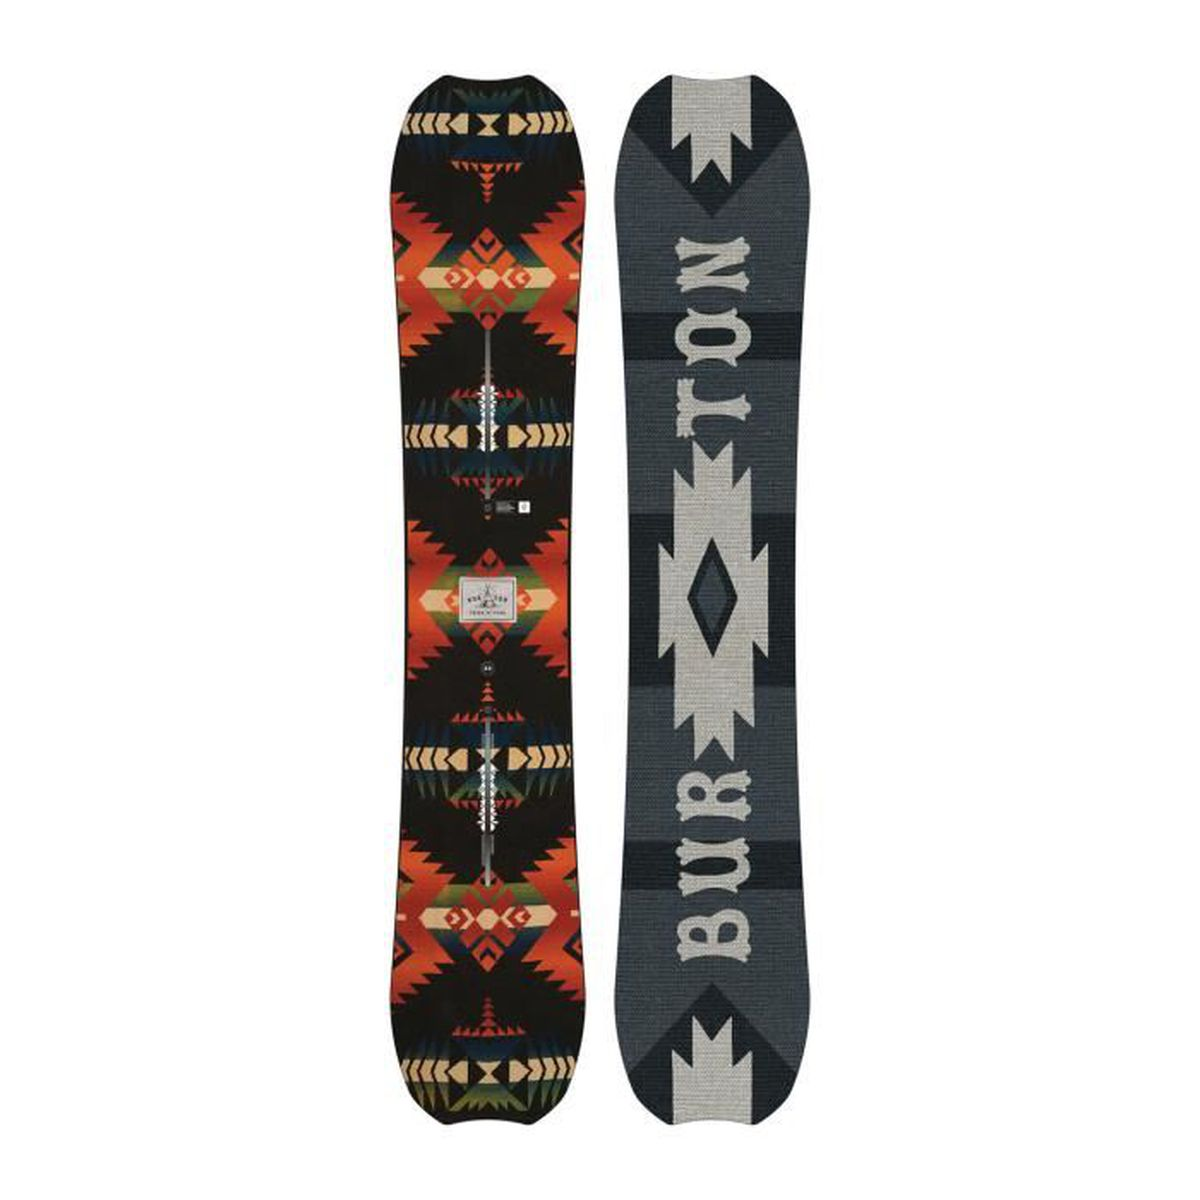 planche de snowboard burton trick pony 2nd prix pas cher. Black Bedroom Furniture Sets. Home Design Ideas